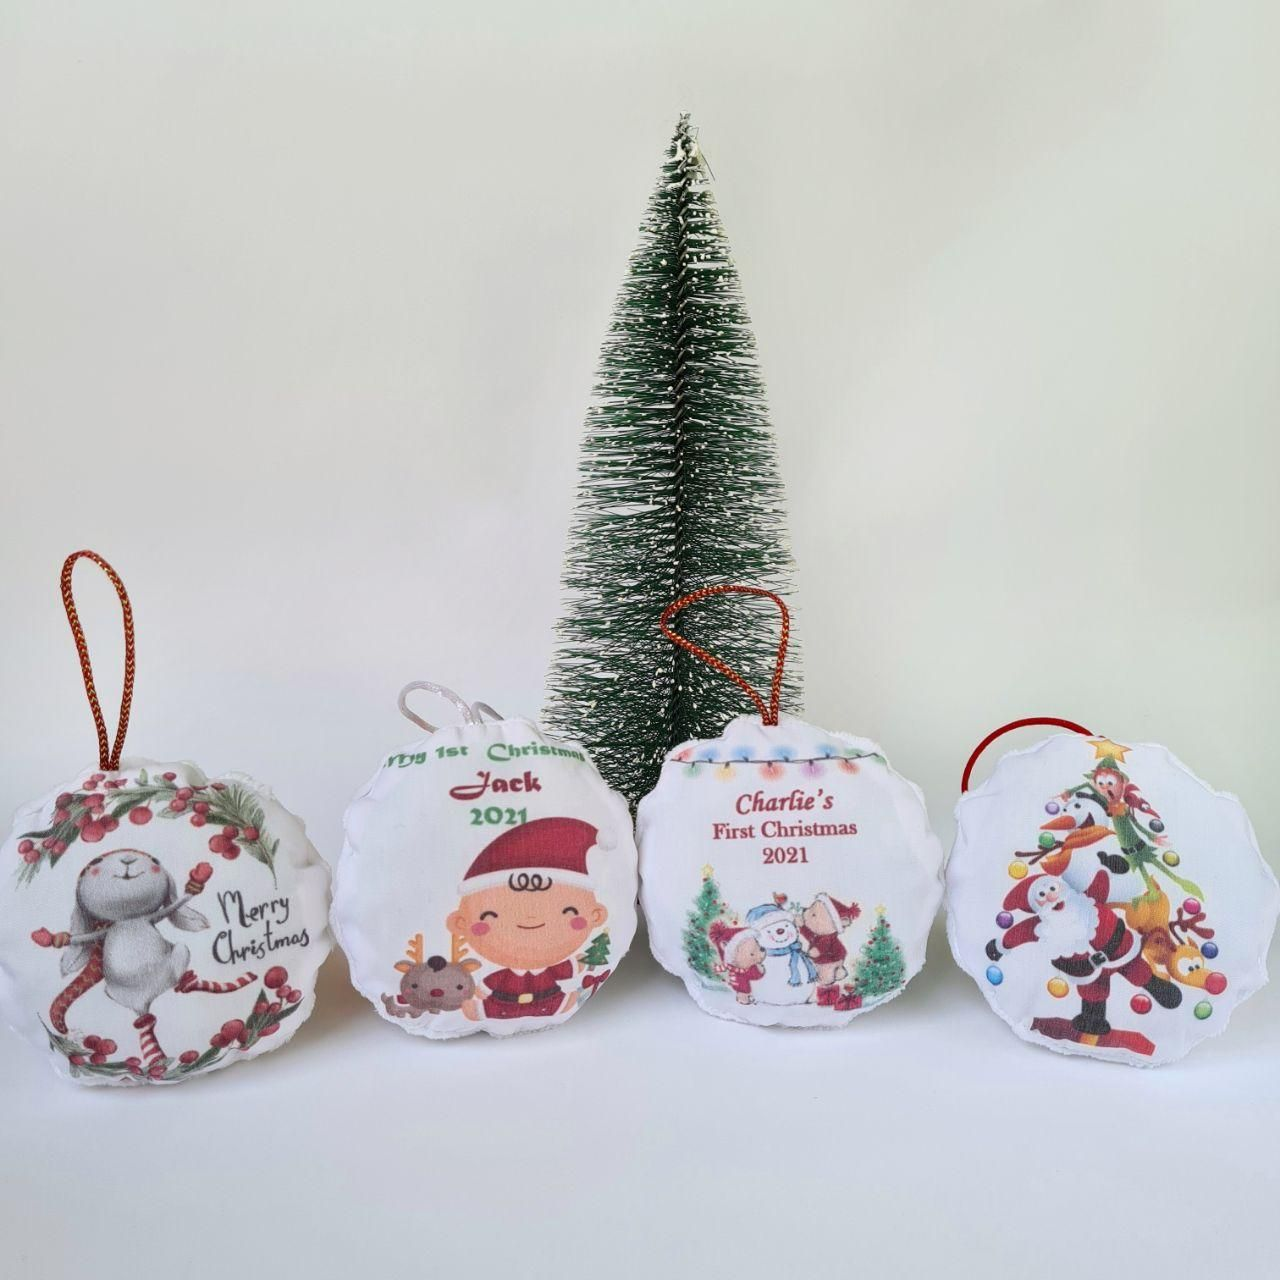 Babys First Christmas Ornament 2020 In 2020 First Christmas Ornament Fabric Christmas Ornaments Christmas Ornaments